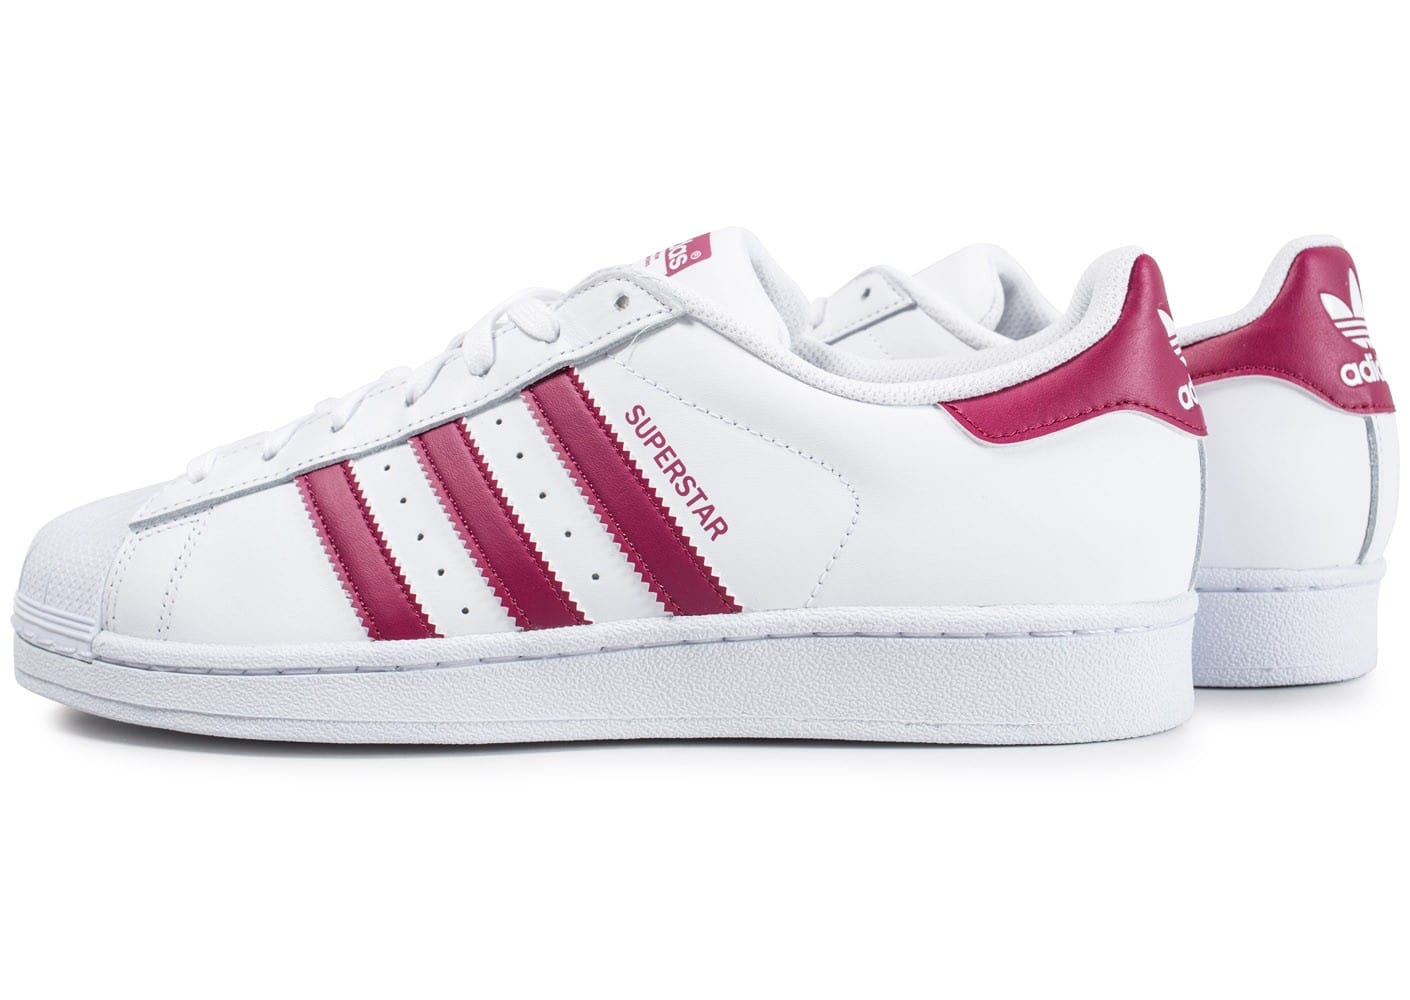 adidas superstar blanc et mauve chaussures baskets homme chausport. Black Bedroom Furniture Sets. Home Design Ideas